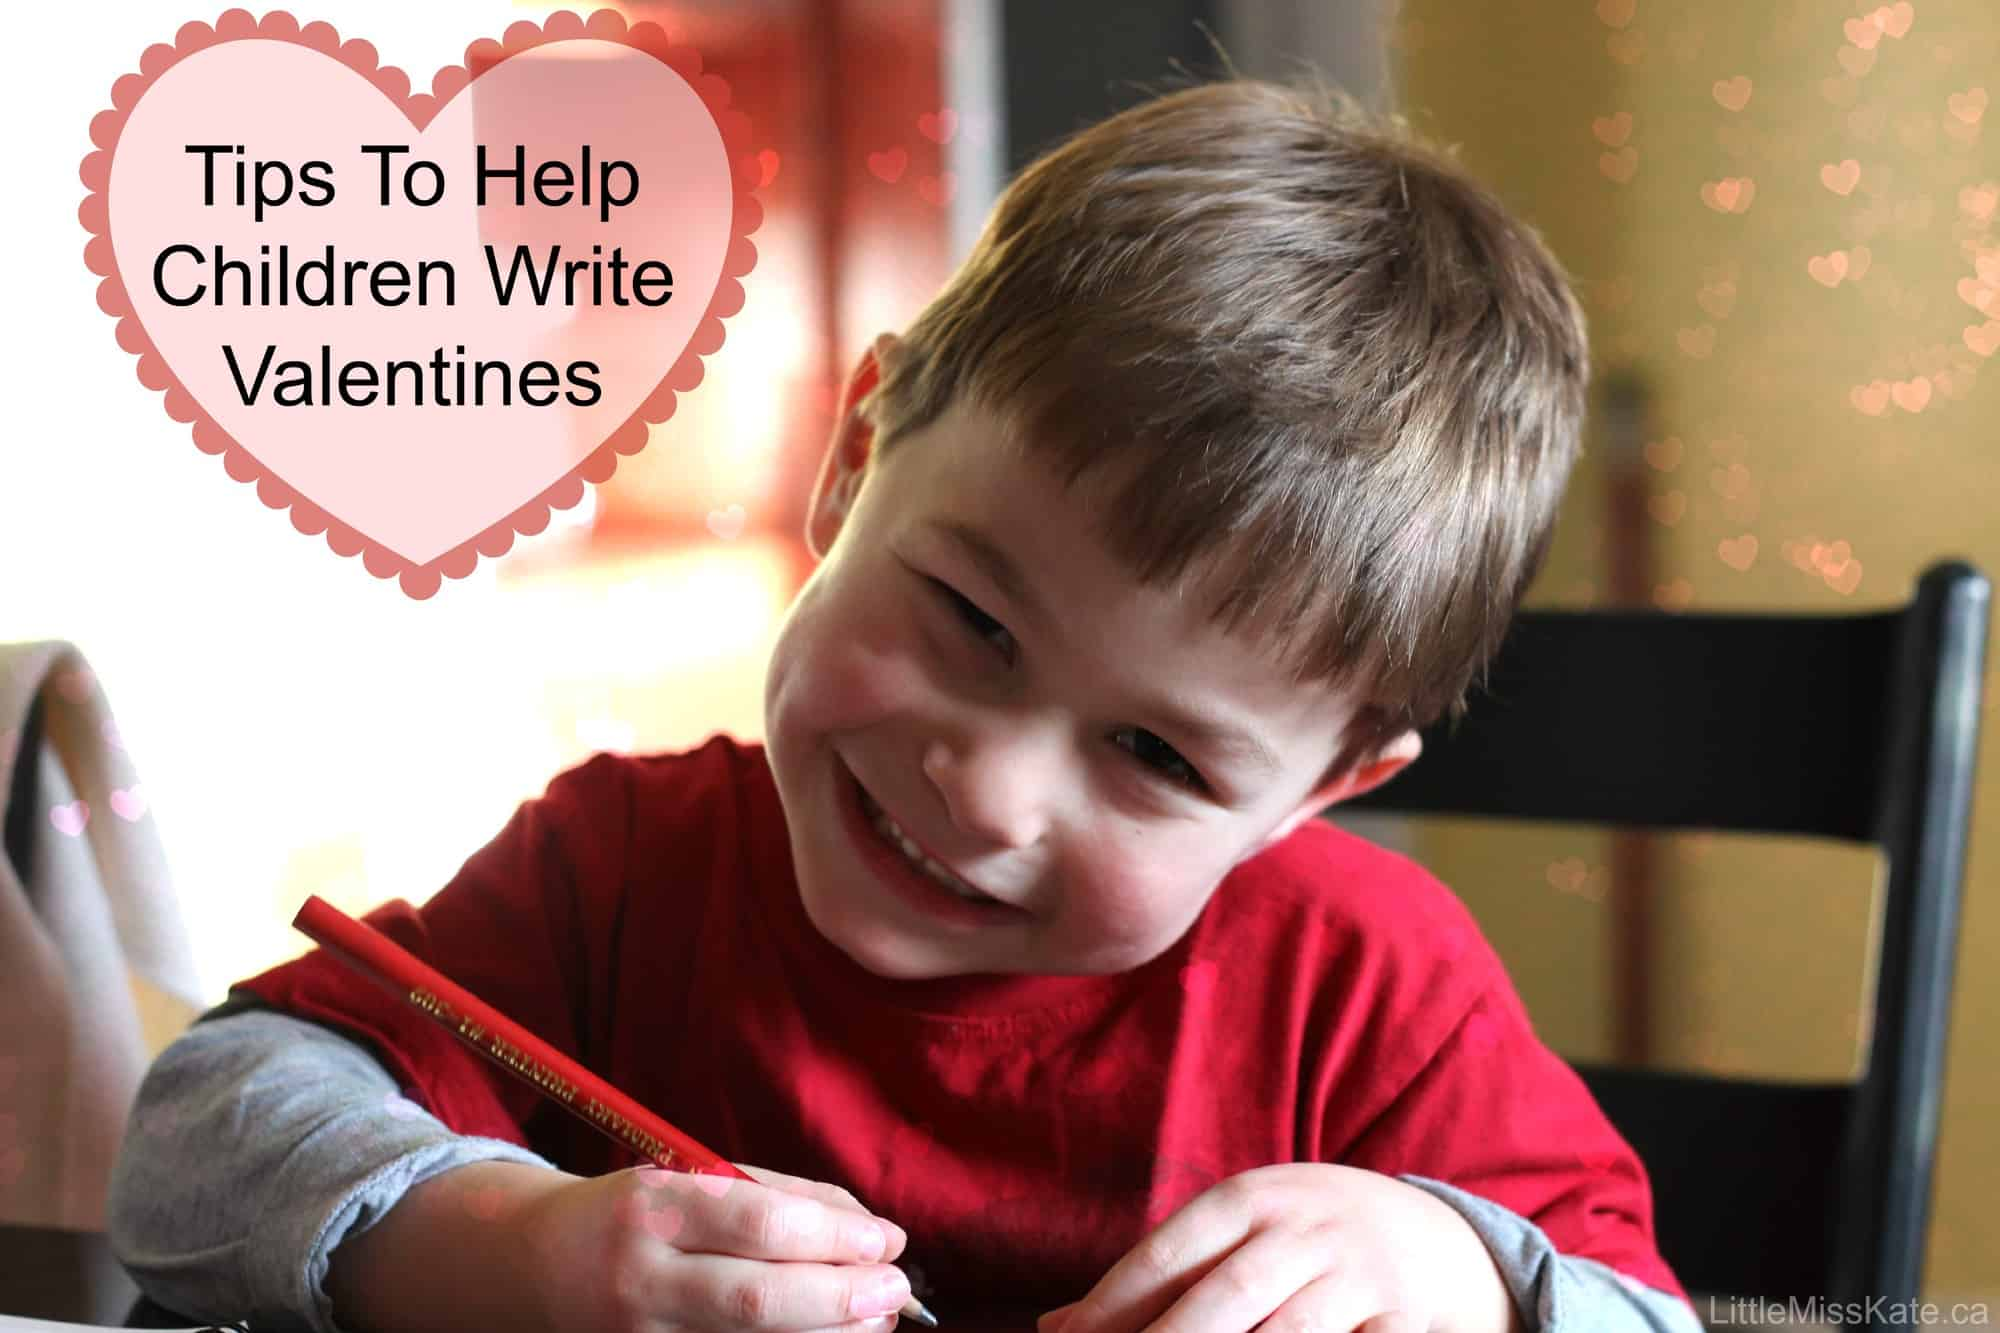 5 Tips To Help Children Write Valentines and Keep It FUN!